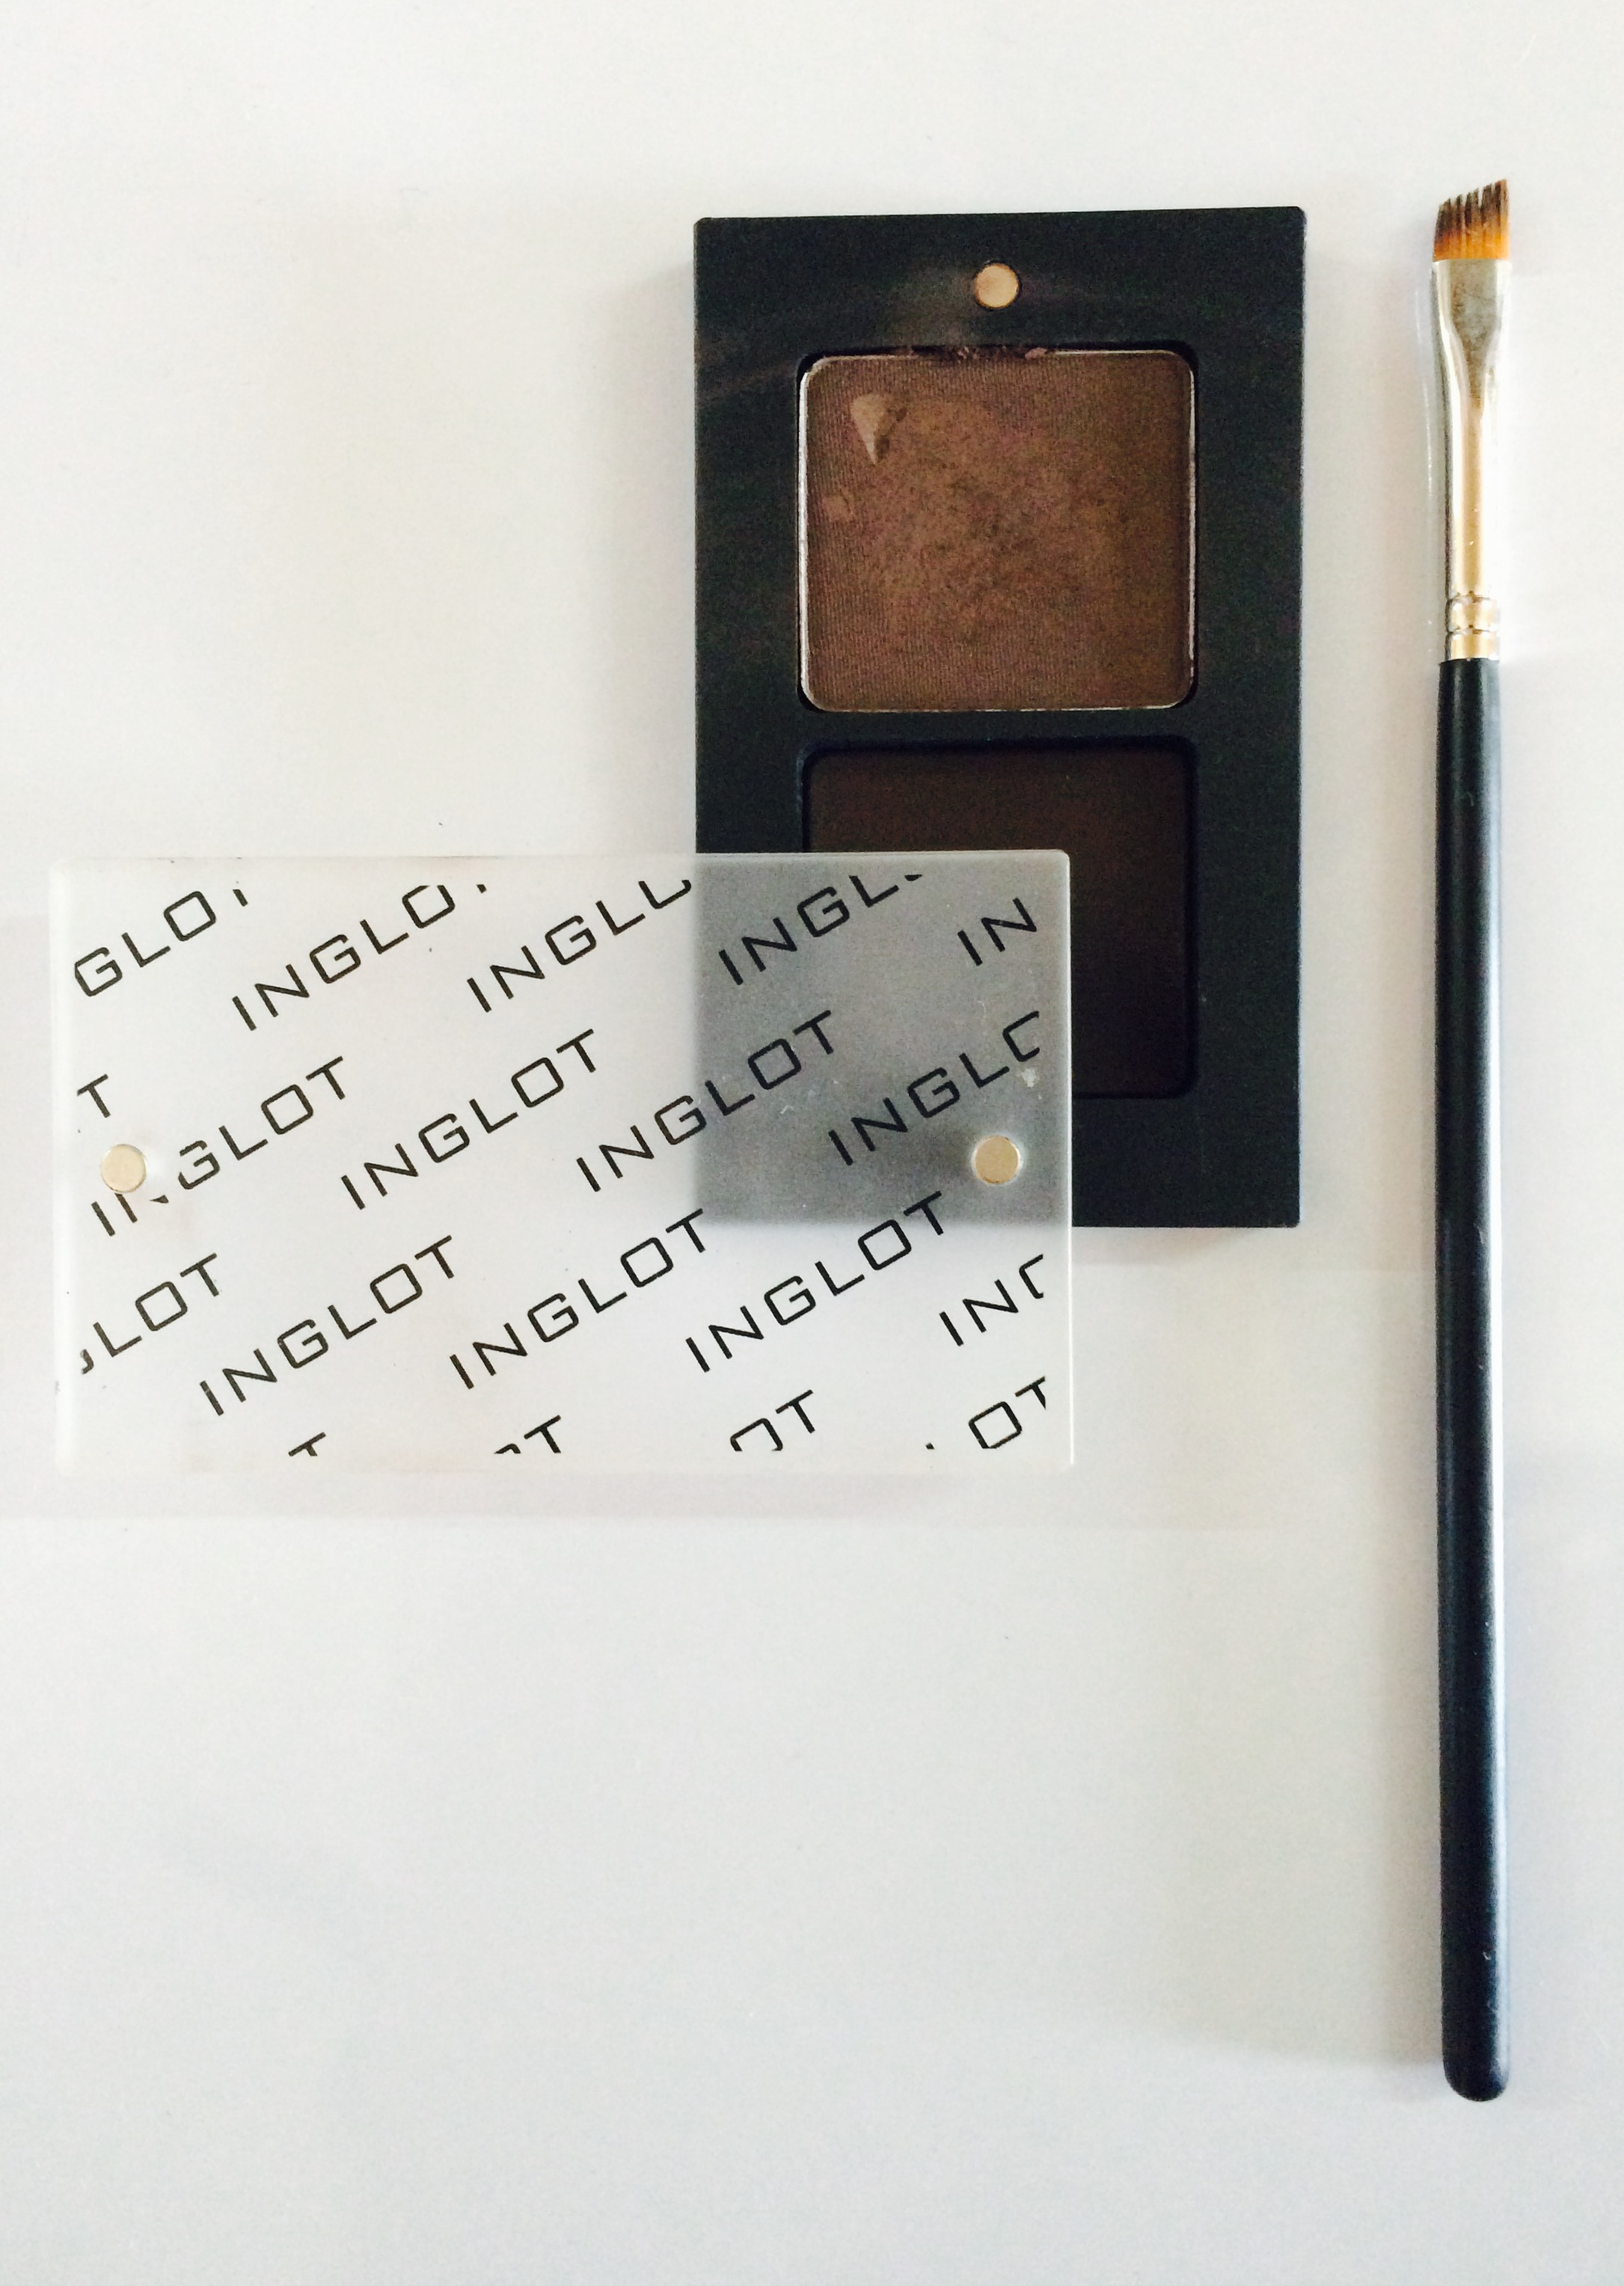 Inglot Freedom System Eyebrow Powder Review